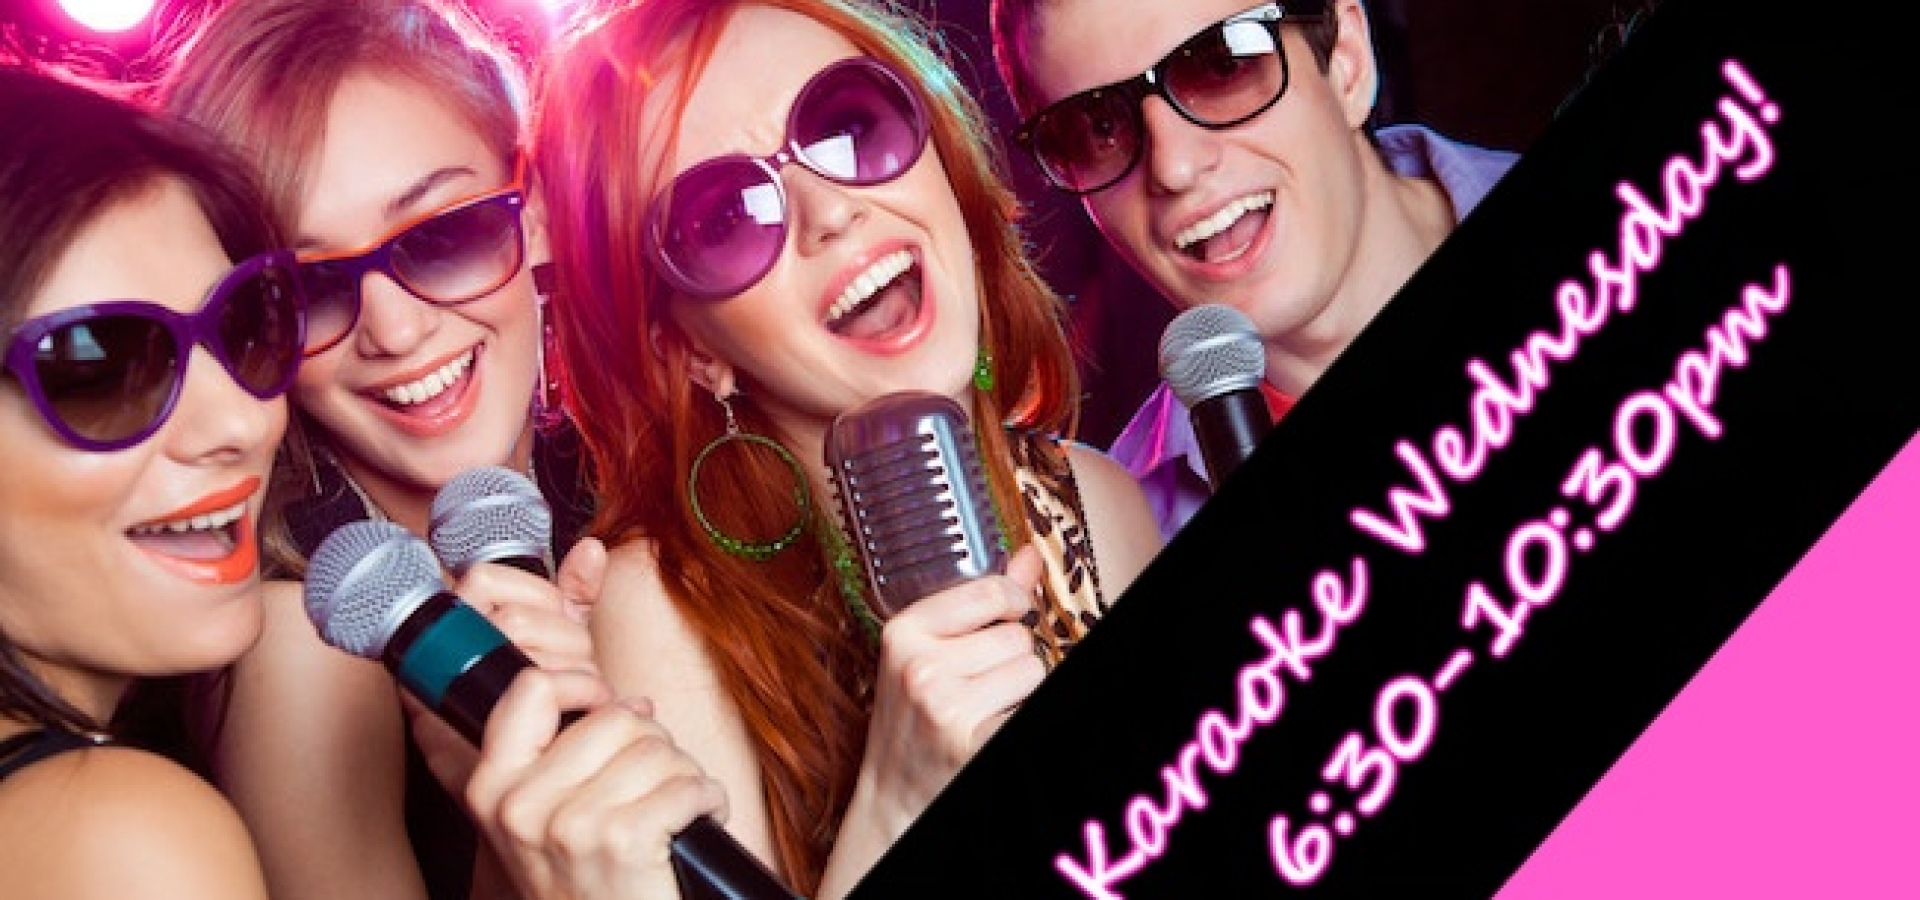 Karaoke Wednesday Graphic_Web Site Pic v3